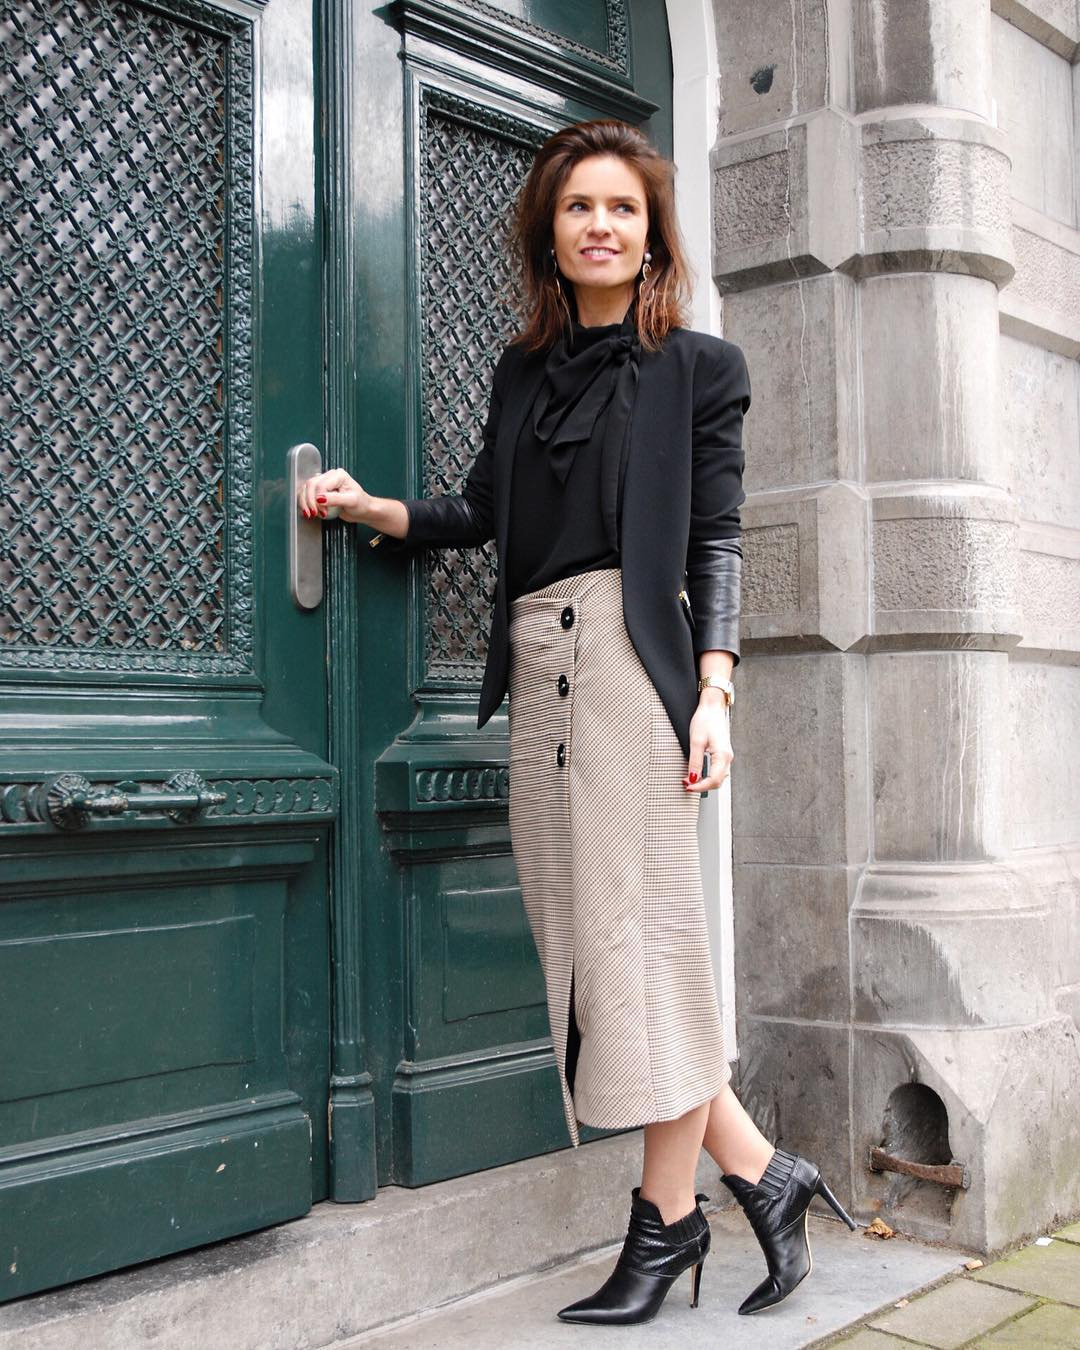 Chic Corporate Style Outfit